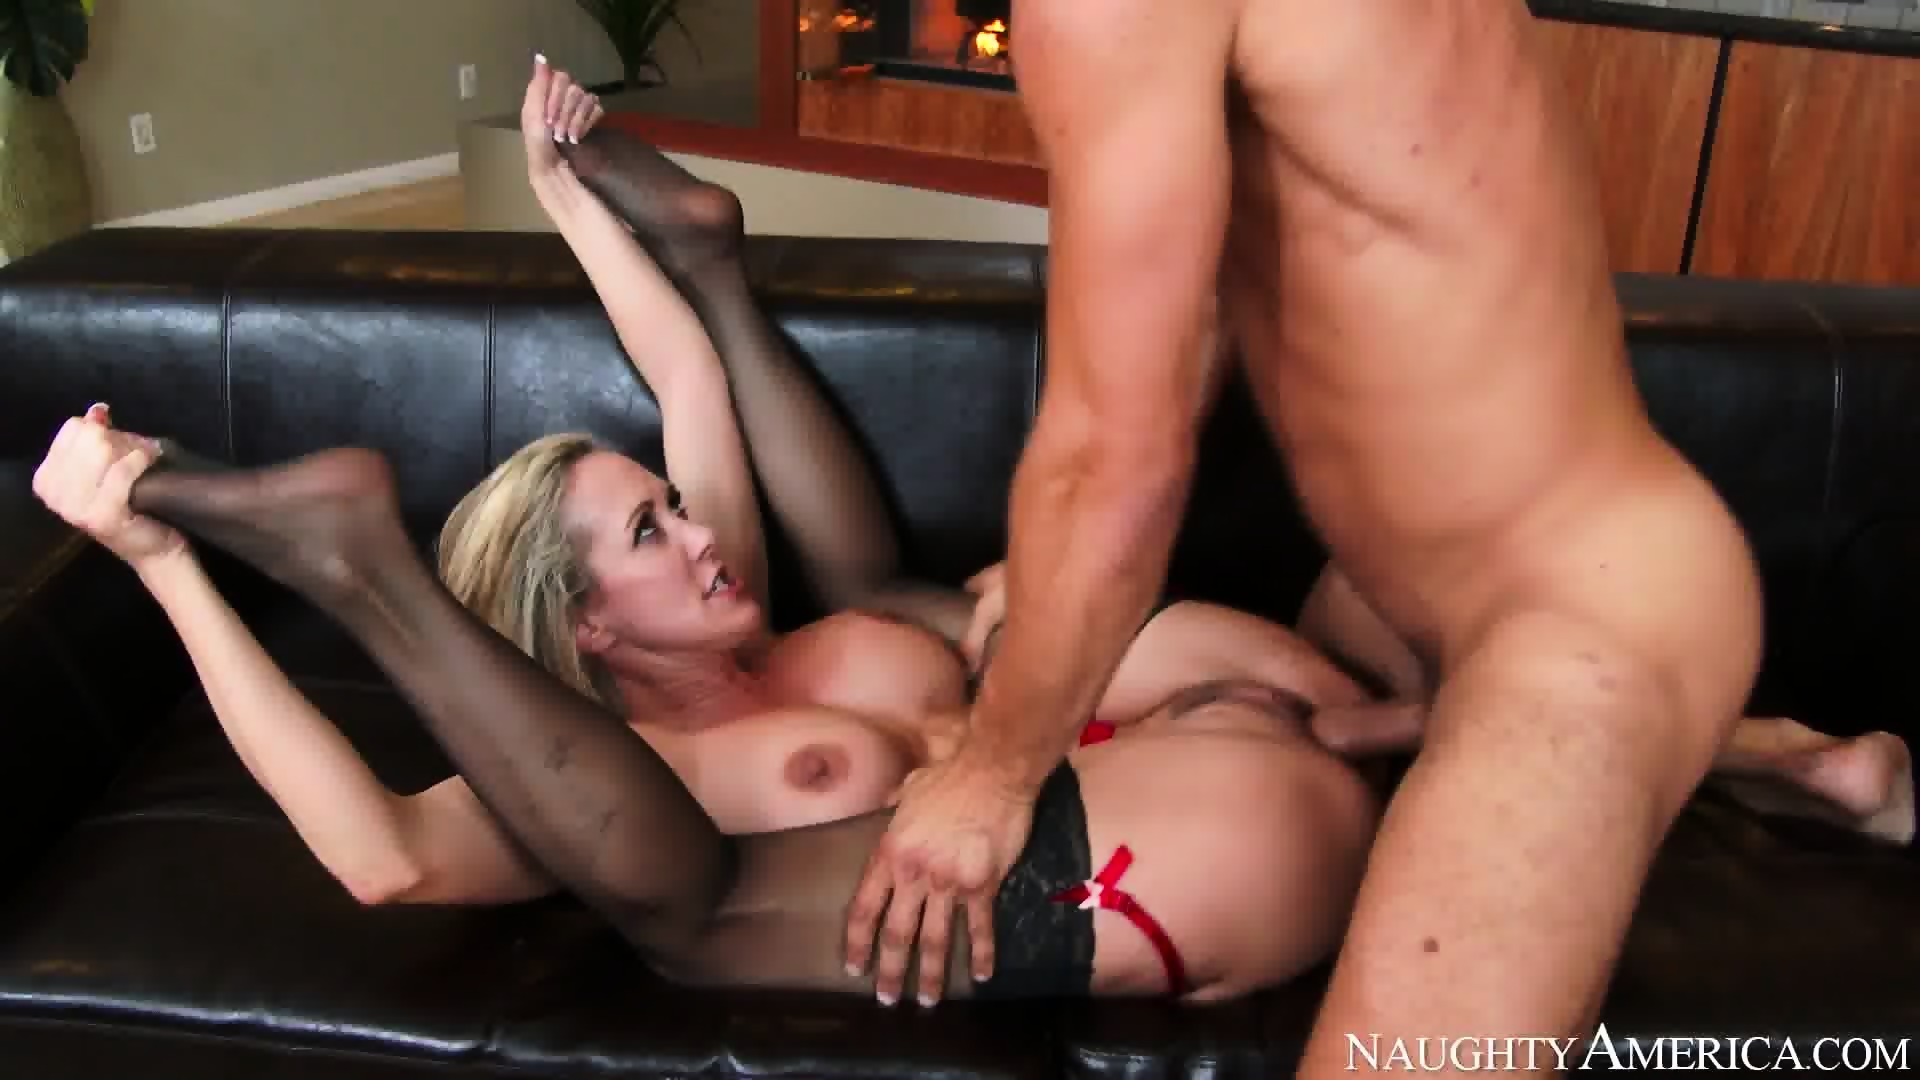 Caroline Pierce ass porn pictures